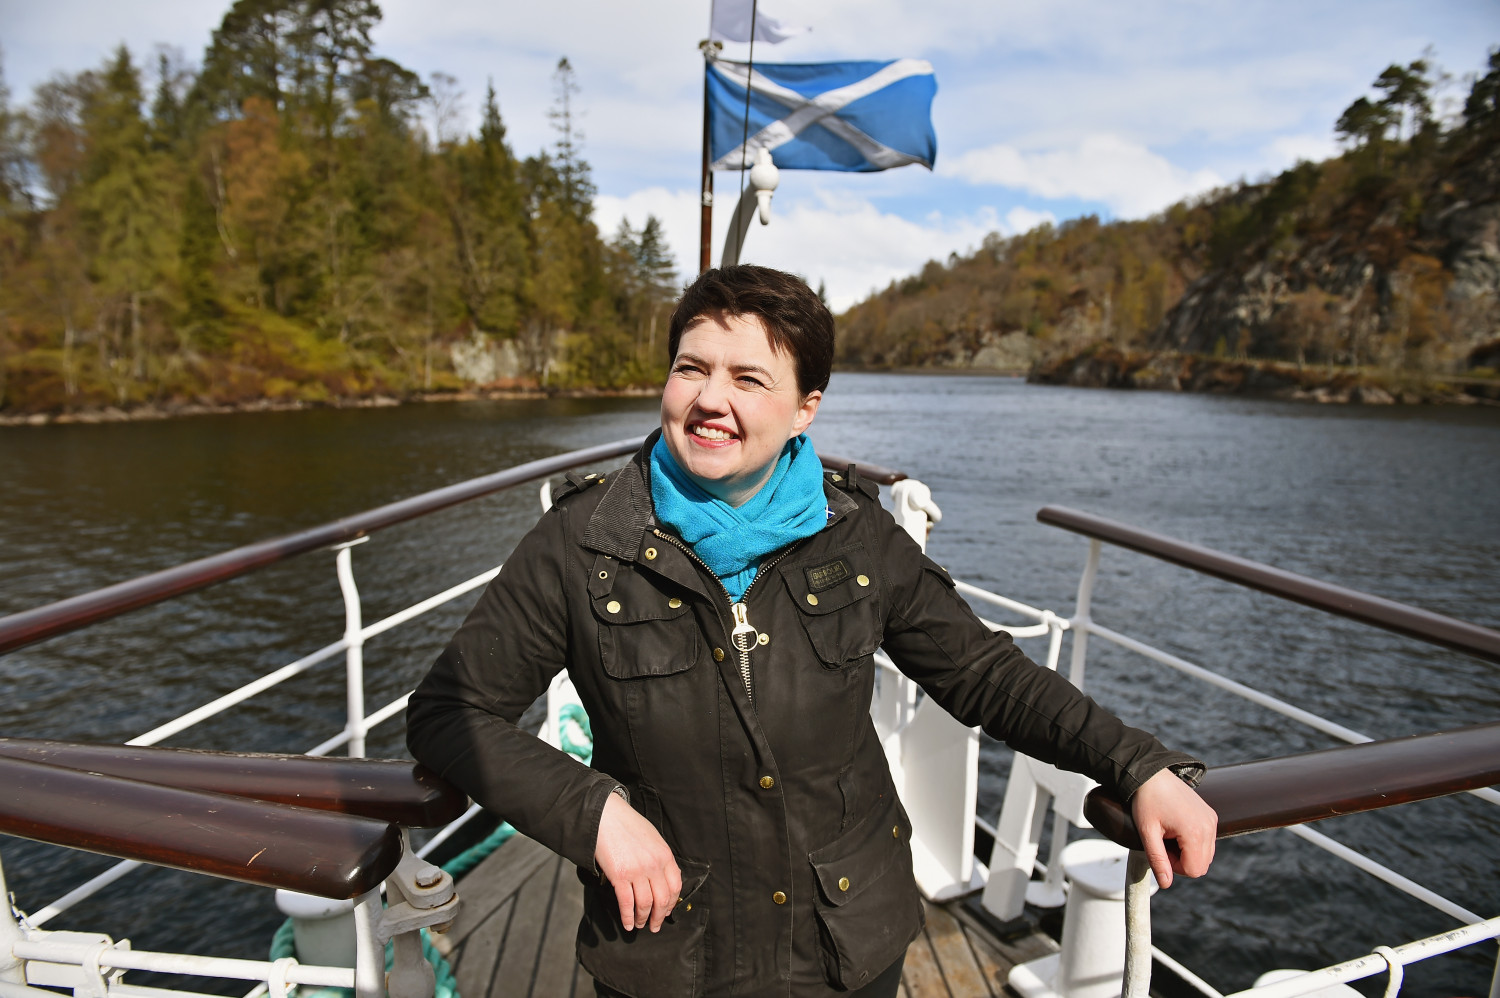 Ruth Davidson was called a 'dyke' during a satirical performance at the event